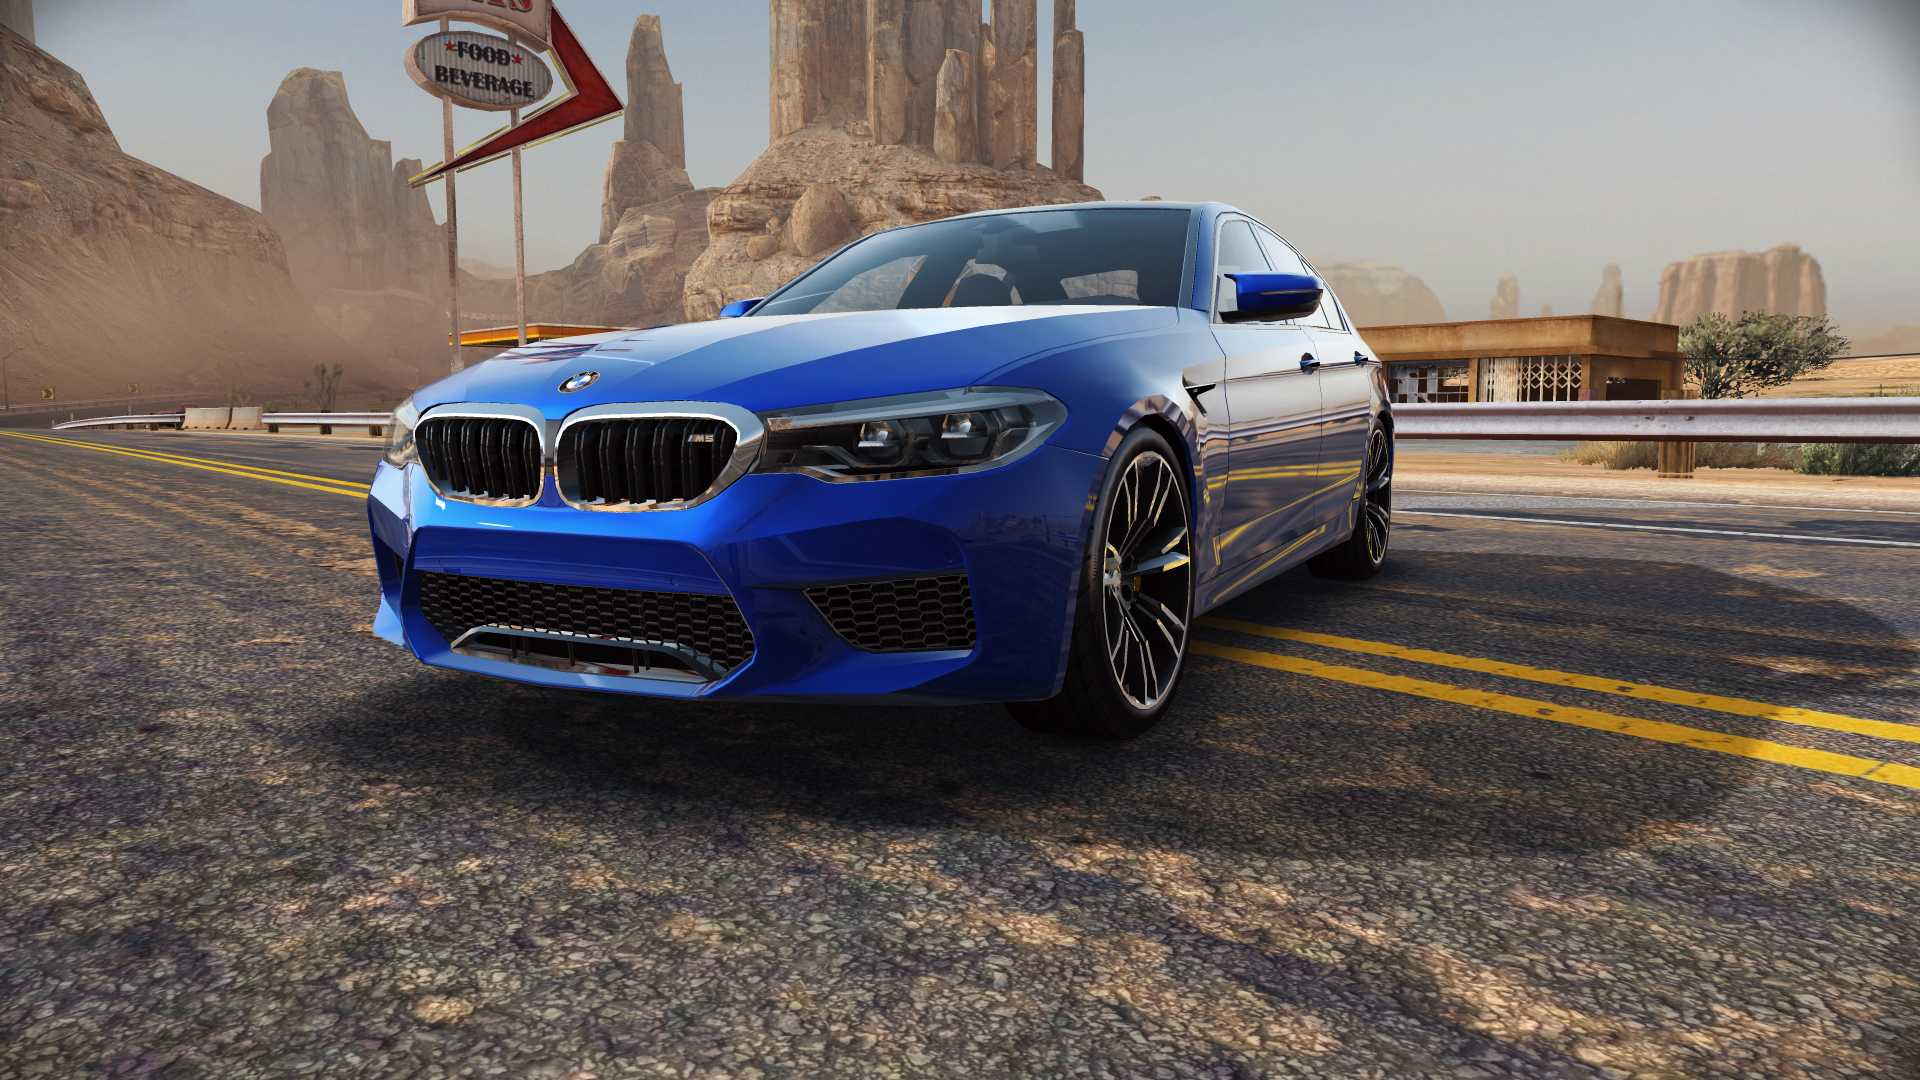 The New Bmw M5 Stars In Need For Speed No Limits Update To Popular Mobile Racing Game From Electronic Arts Brings New Bmw M5 To Life For Millions Of Gamers Worldwide